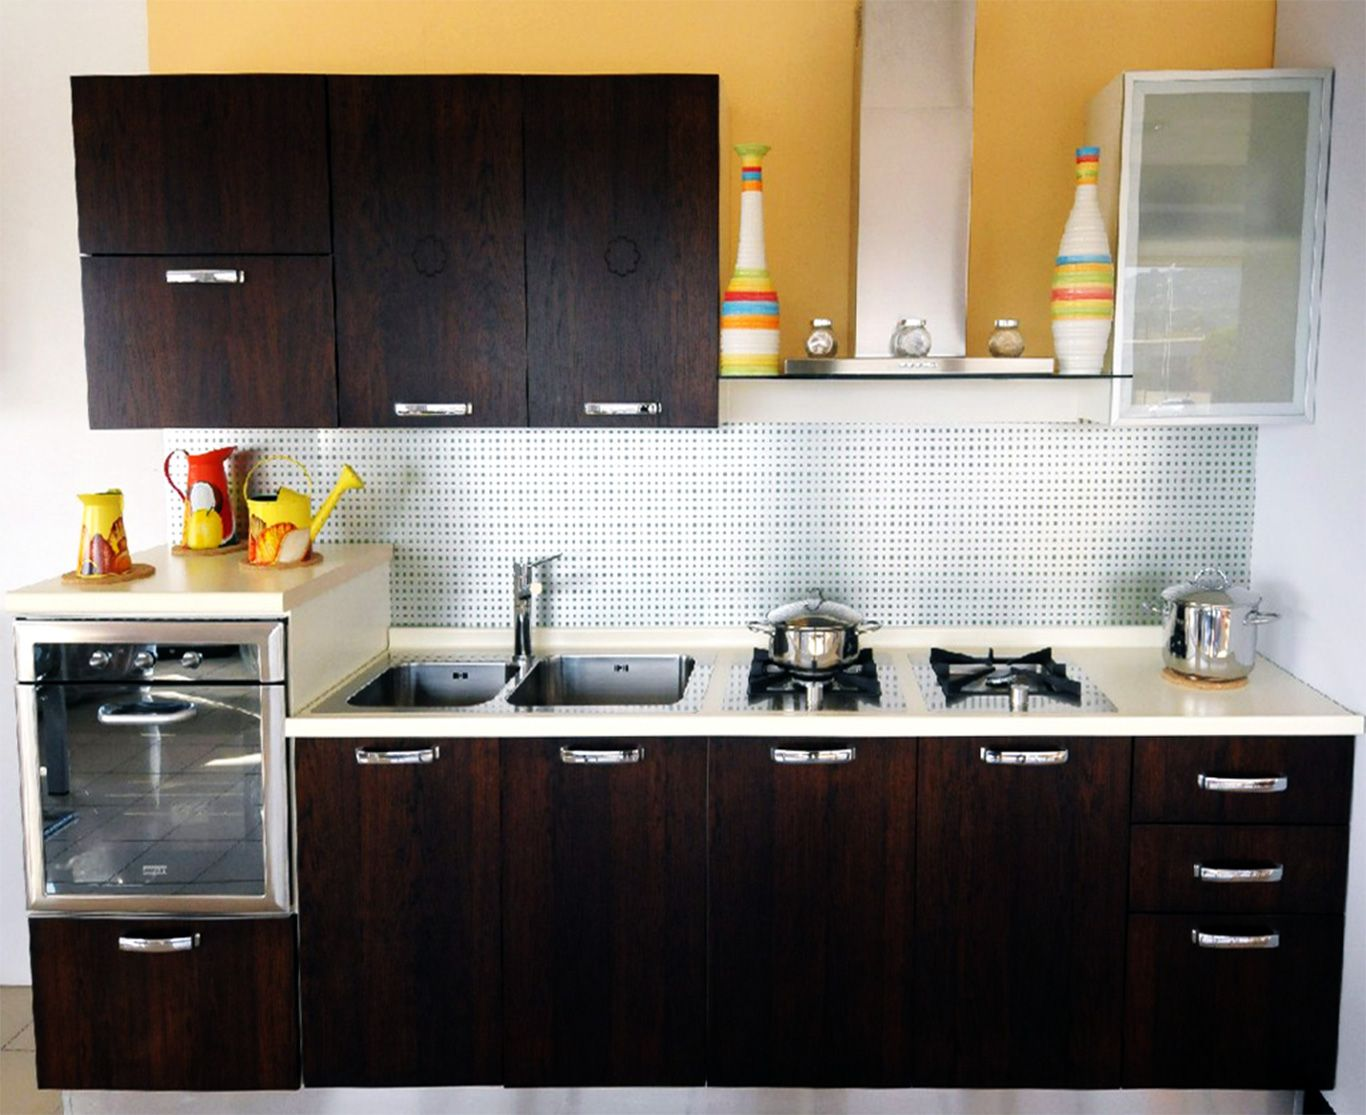 Pune Kitchens Is The Modular Kitchen Shutters Supplier Company In Pune Please Visit Our Website